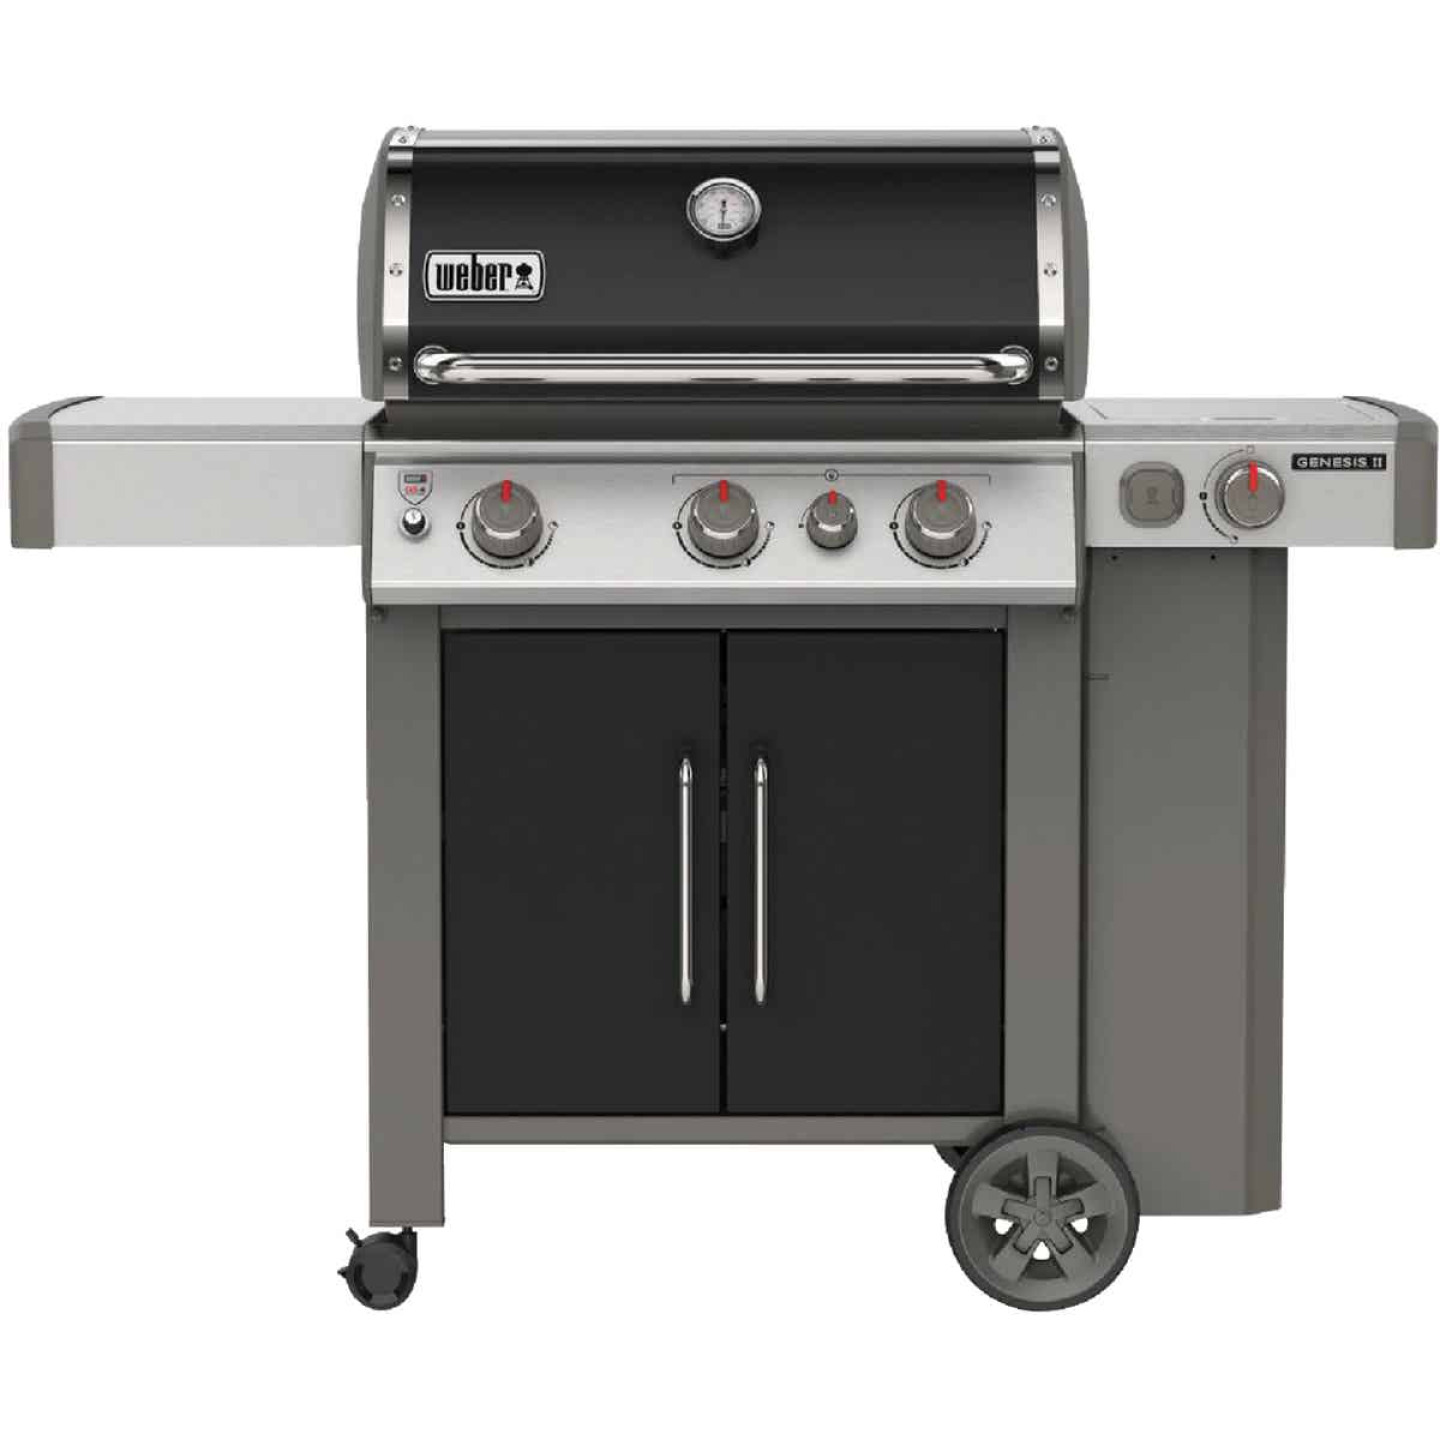 Weber Genesis II E-335 3-Burner Black 39,000 BTU LP Gas Grill with 12,000 BTU Side -Burner Image 1